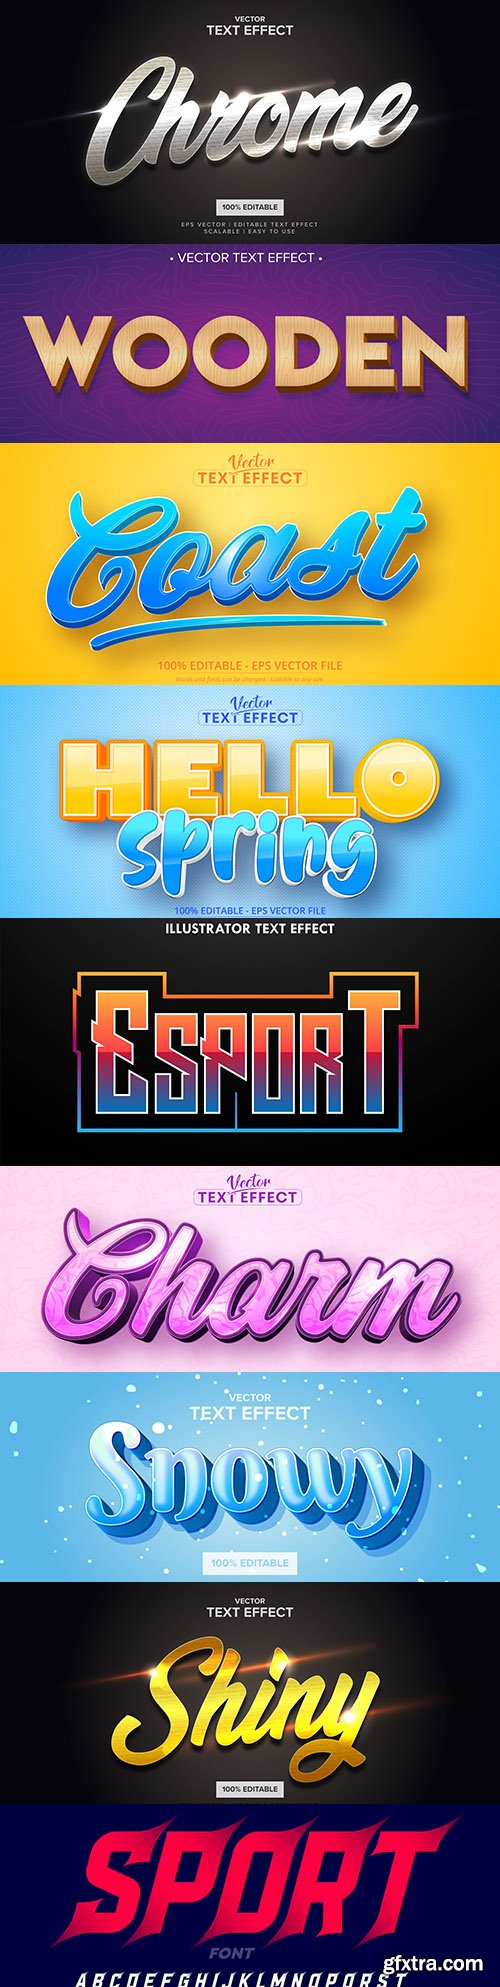 Editable font and 3d effect text design collection illustration 35